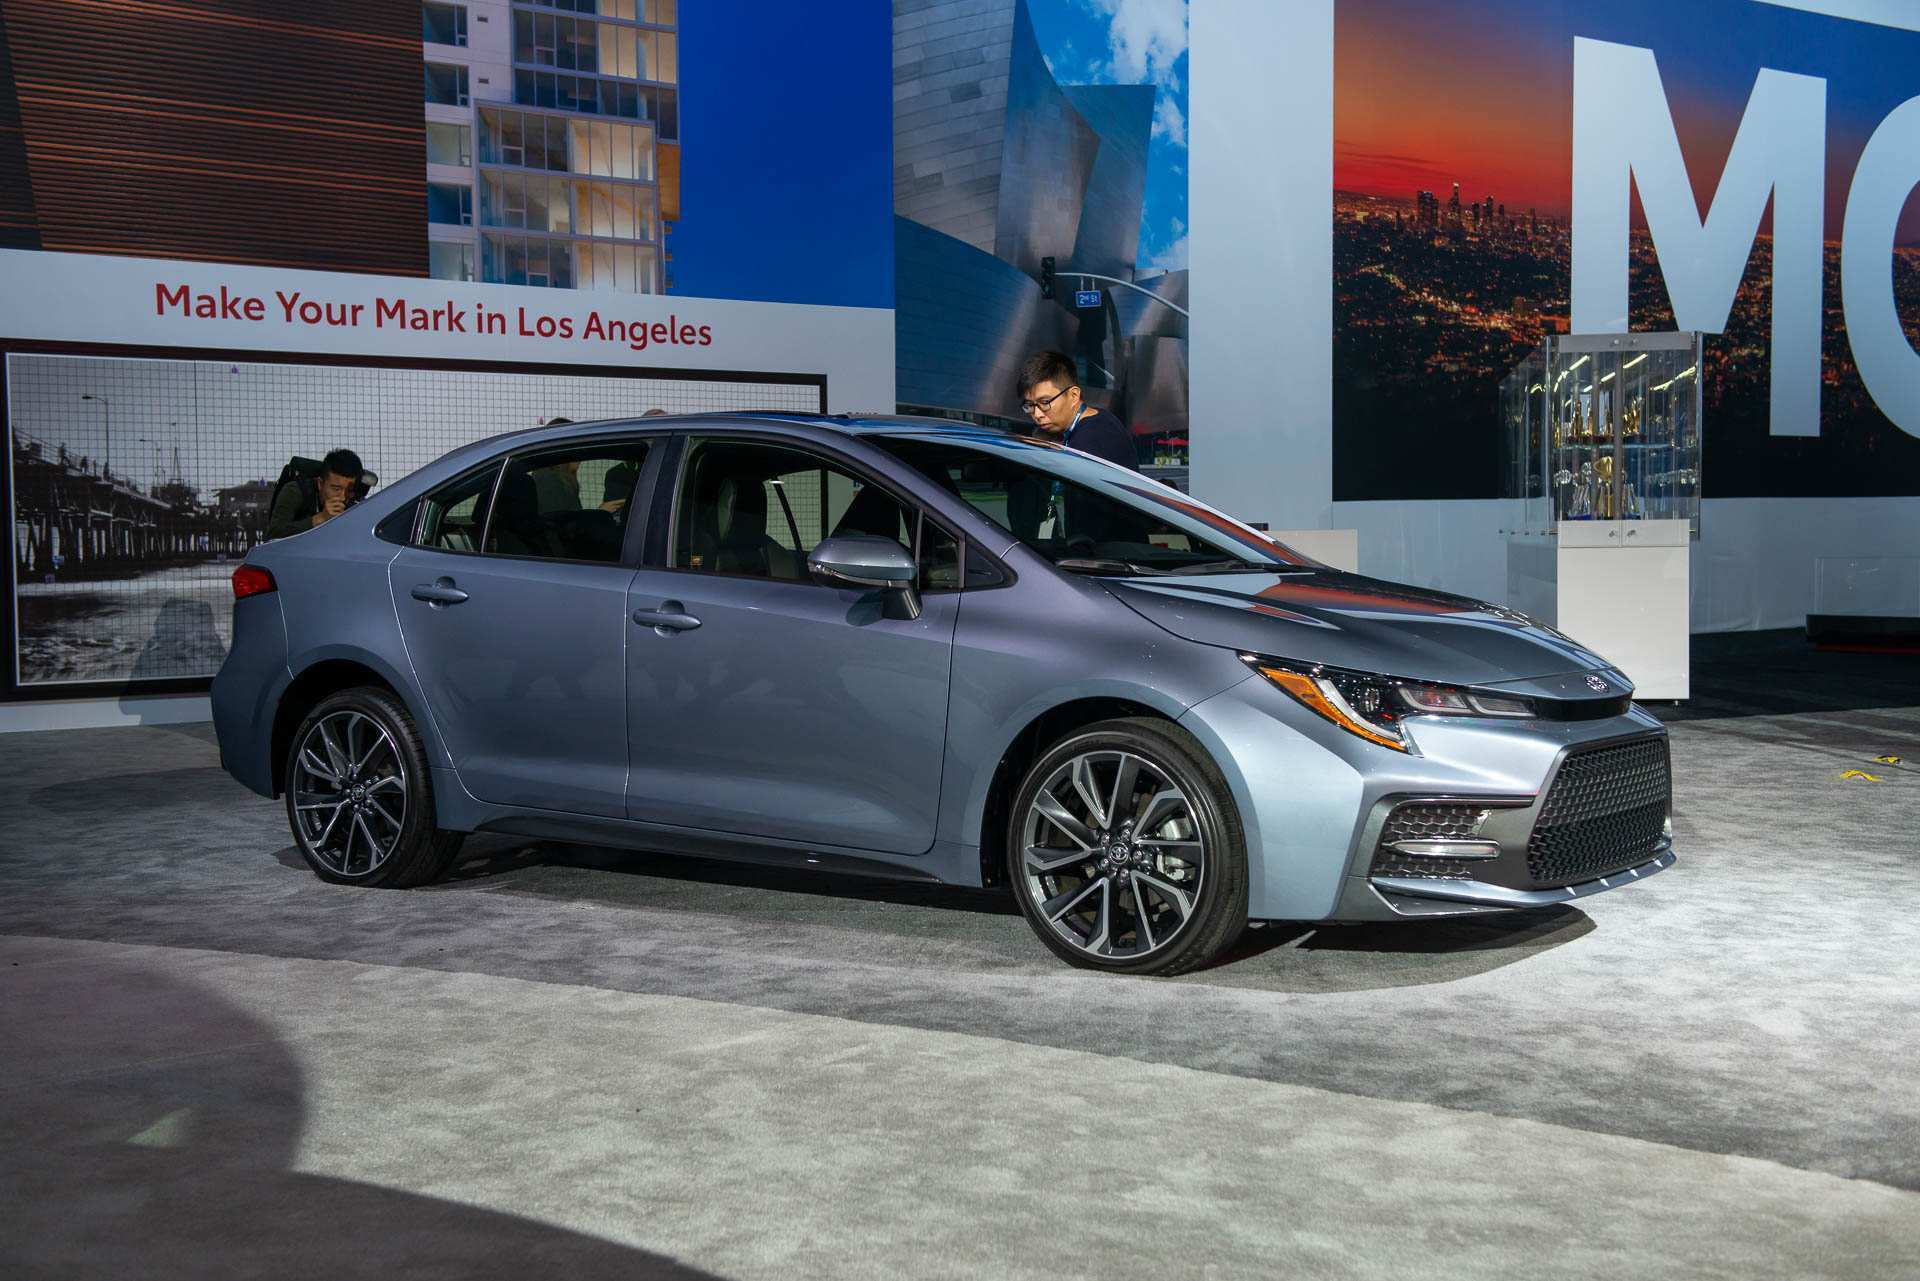 52 All New Toyota Corolla Hybrid 2020 Concept